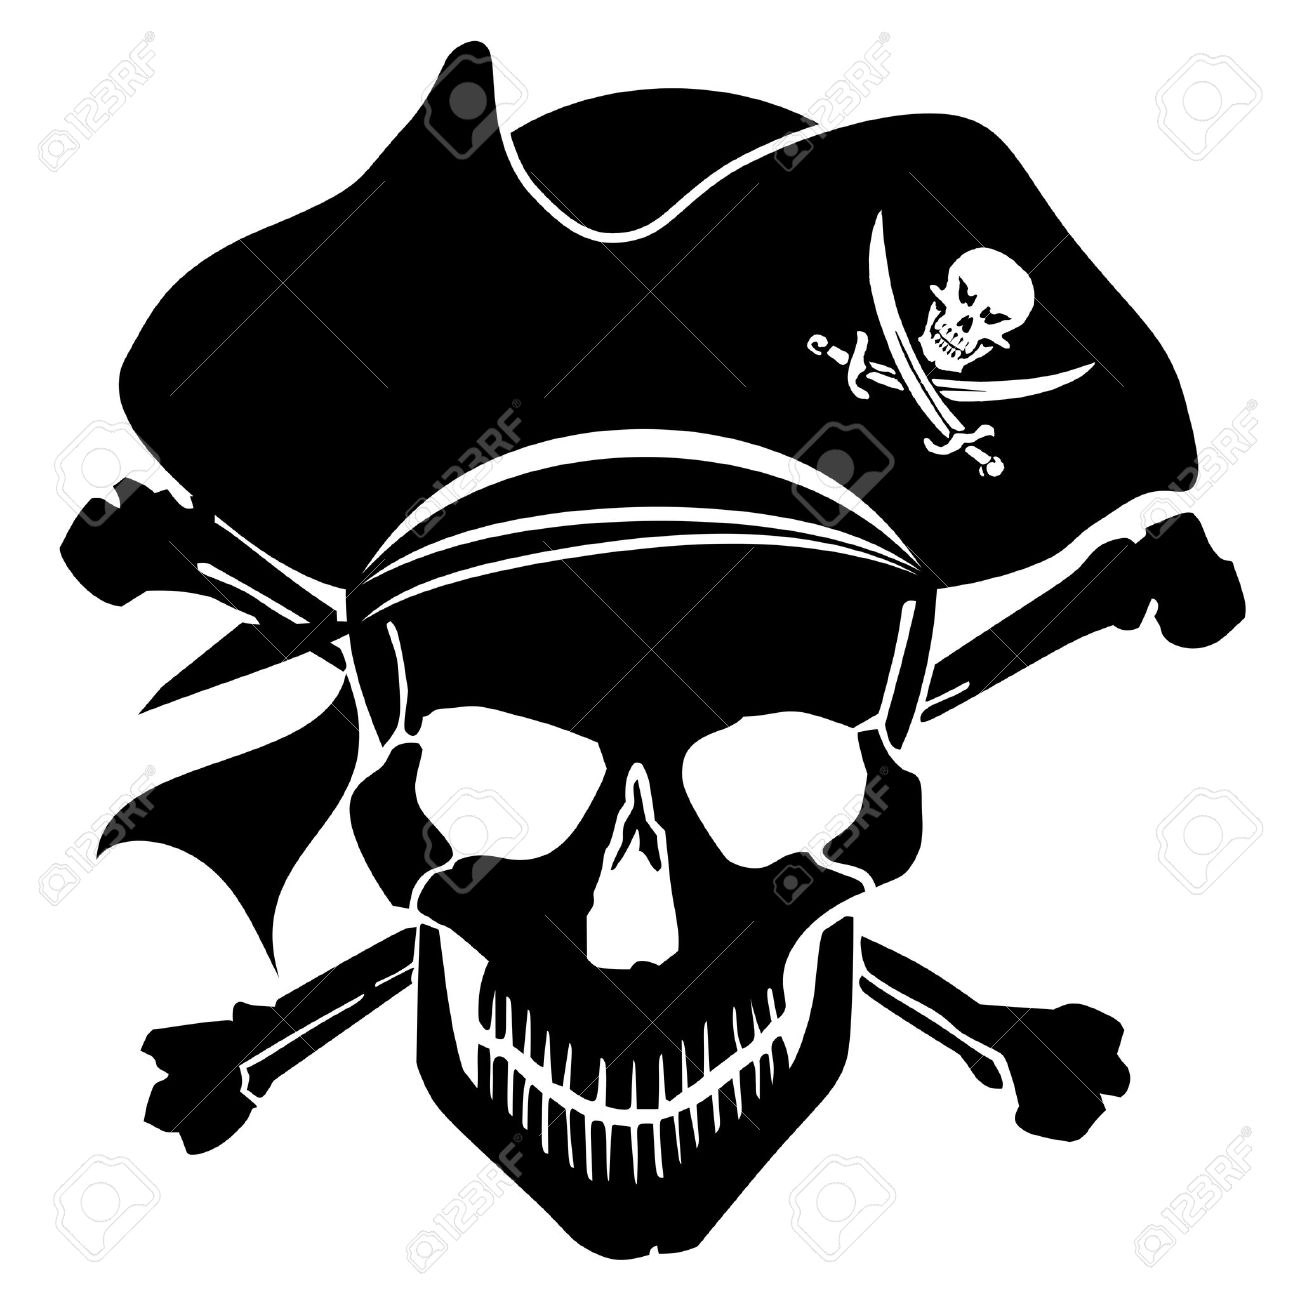 30 411 pirate stock vector illustration and royalty free pirate